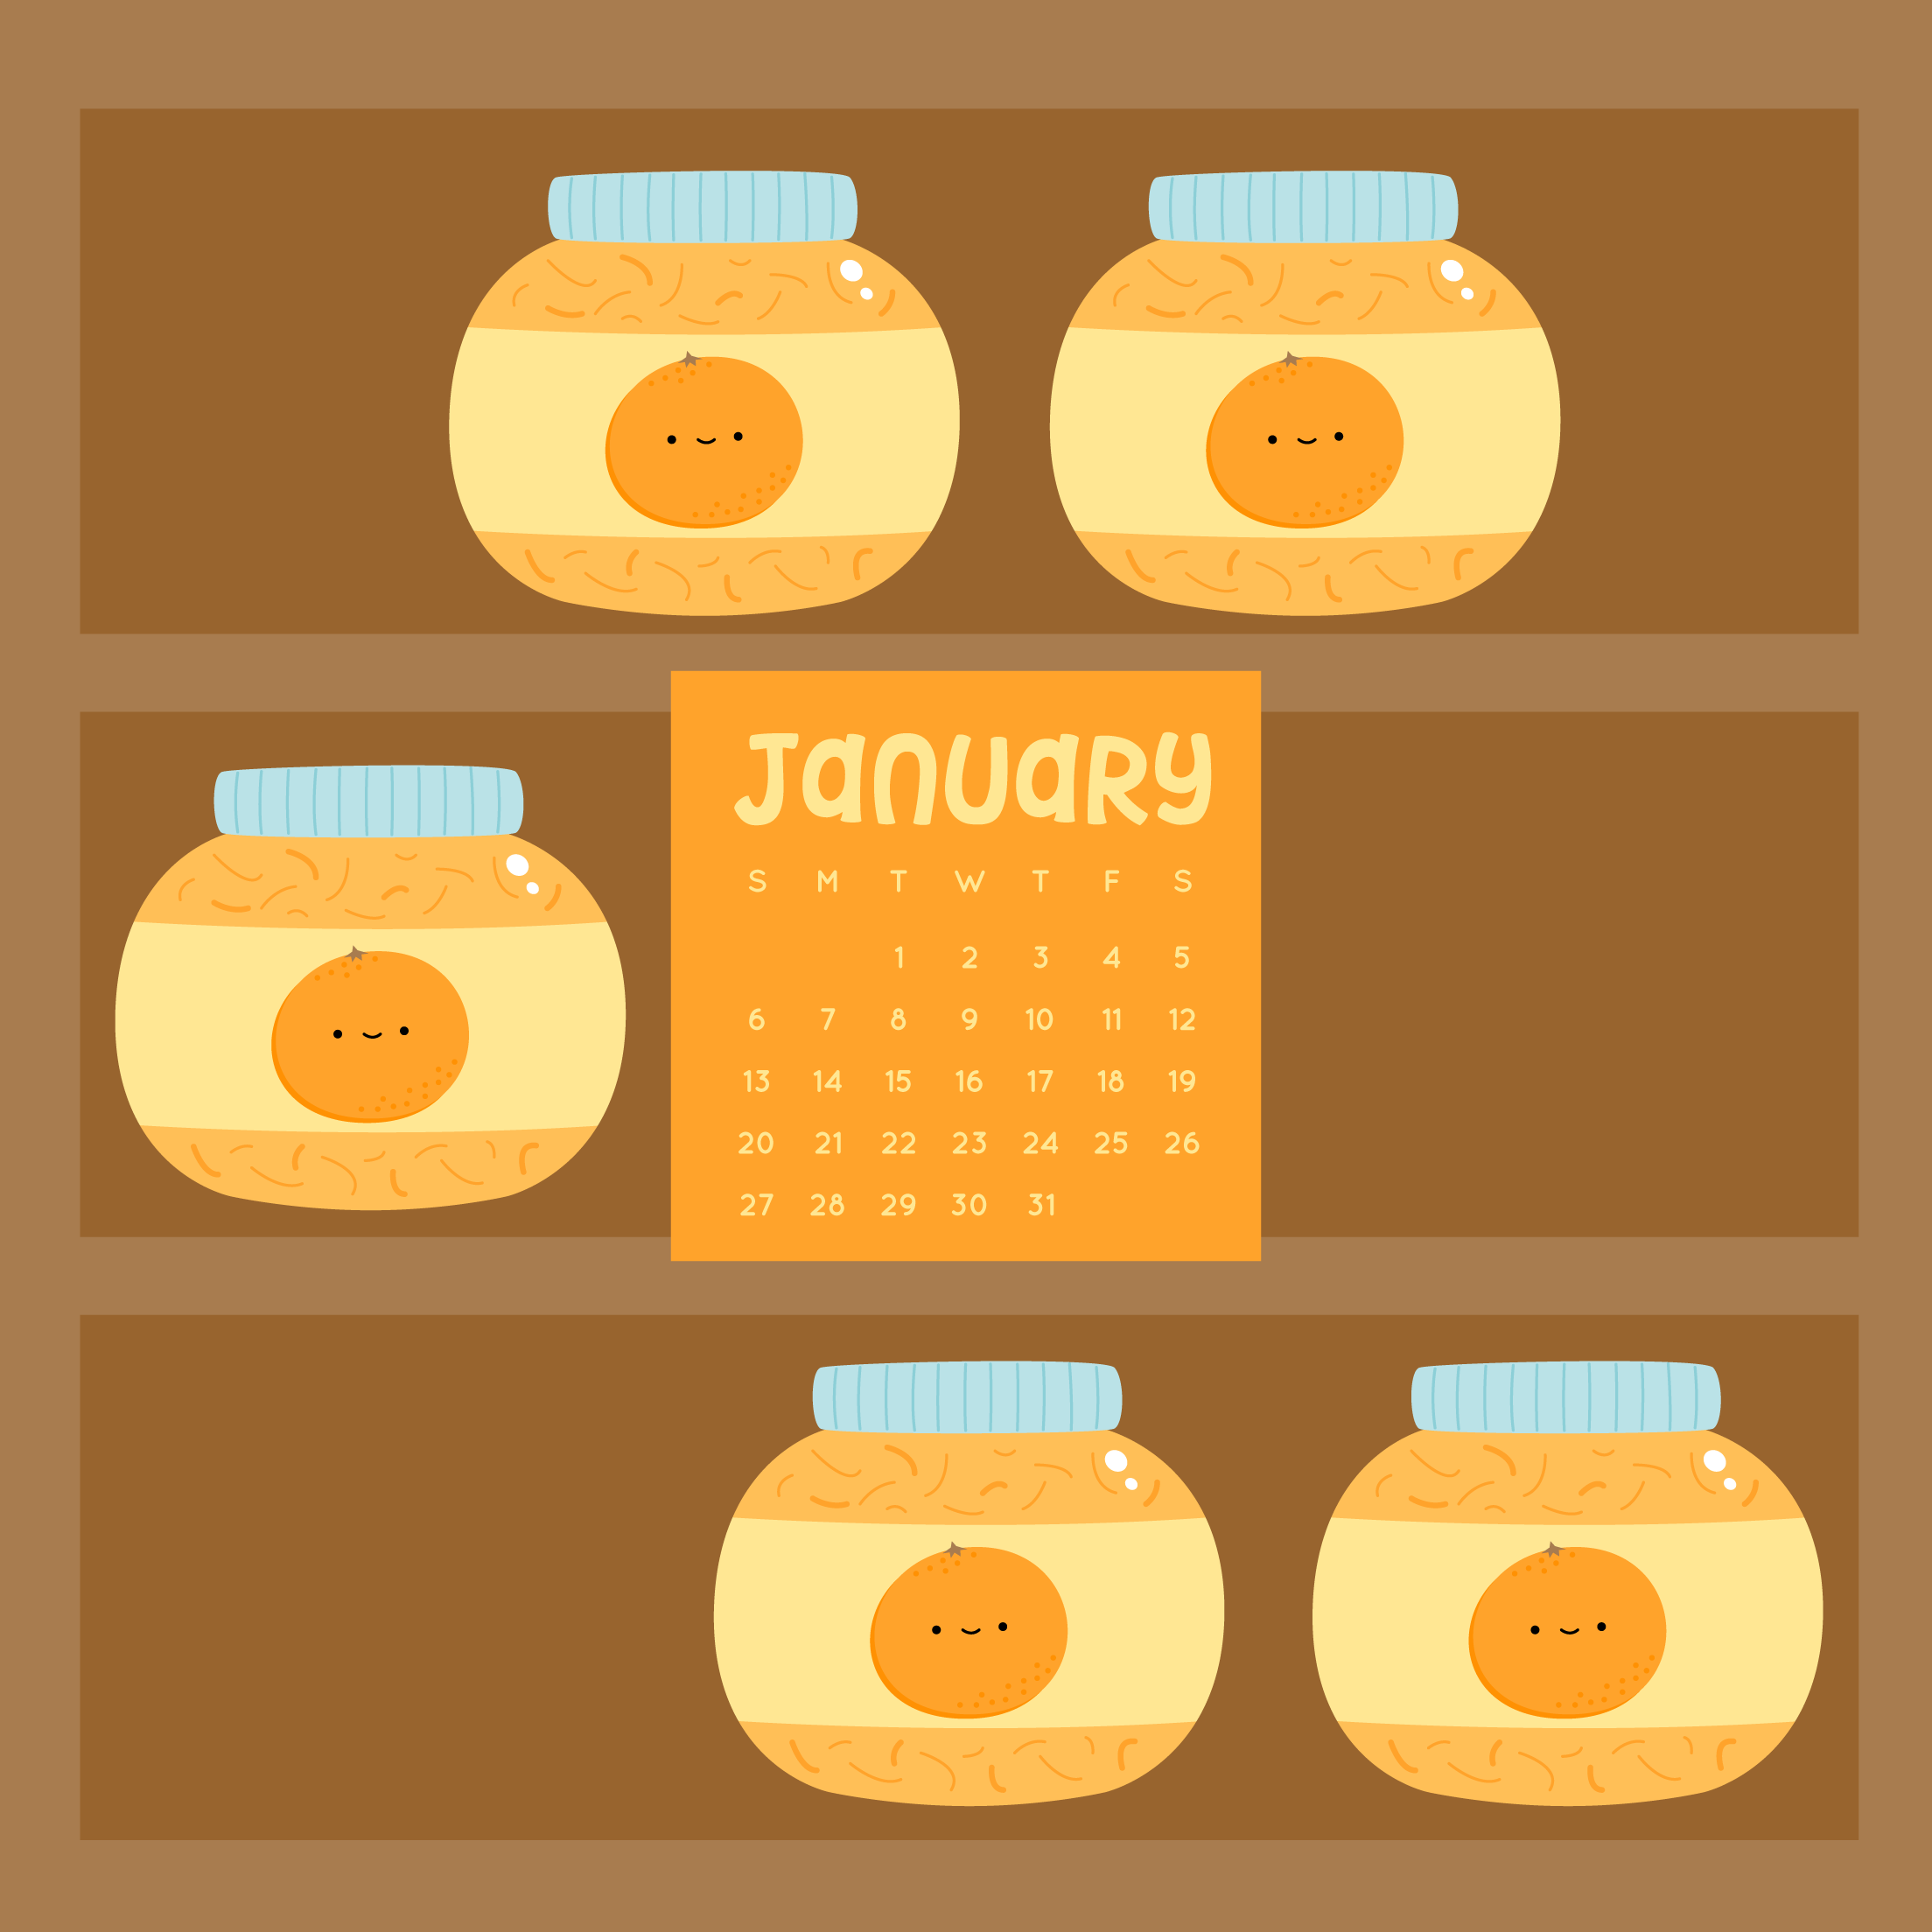 Wild Olive Calendar January Orange Marmalade Wallpapers Images, Photos, Reviews